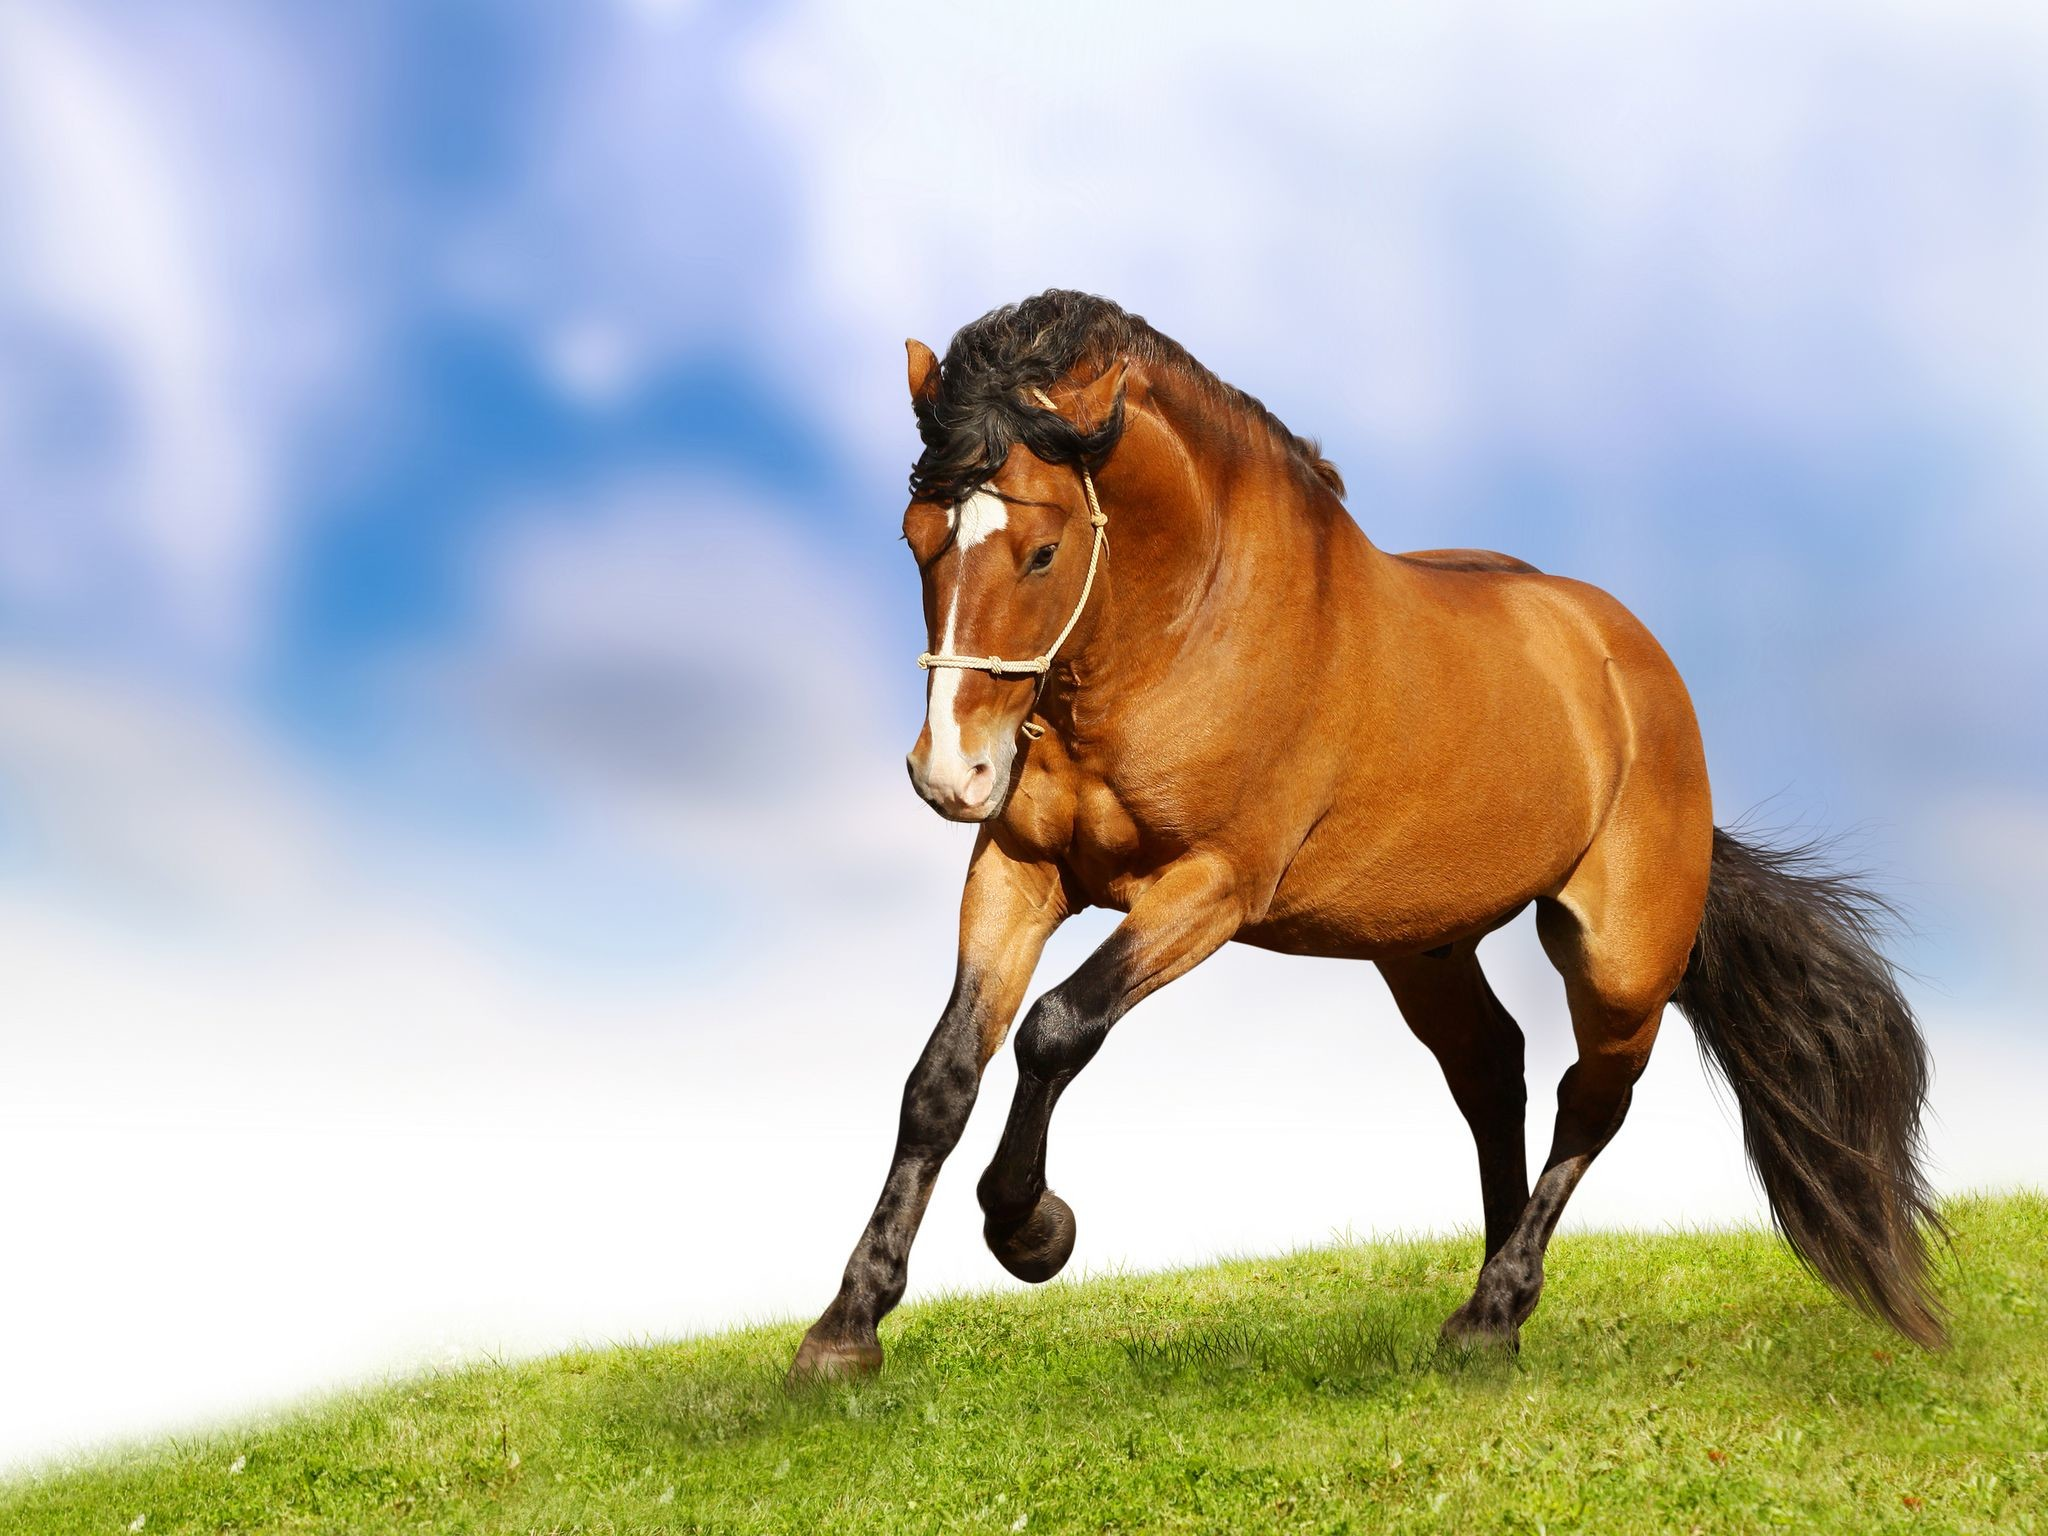 Horse Wallpaper Iphone Horse Hd Images Free Download 2048x1536 Wallpaper Teahub Io